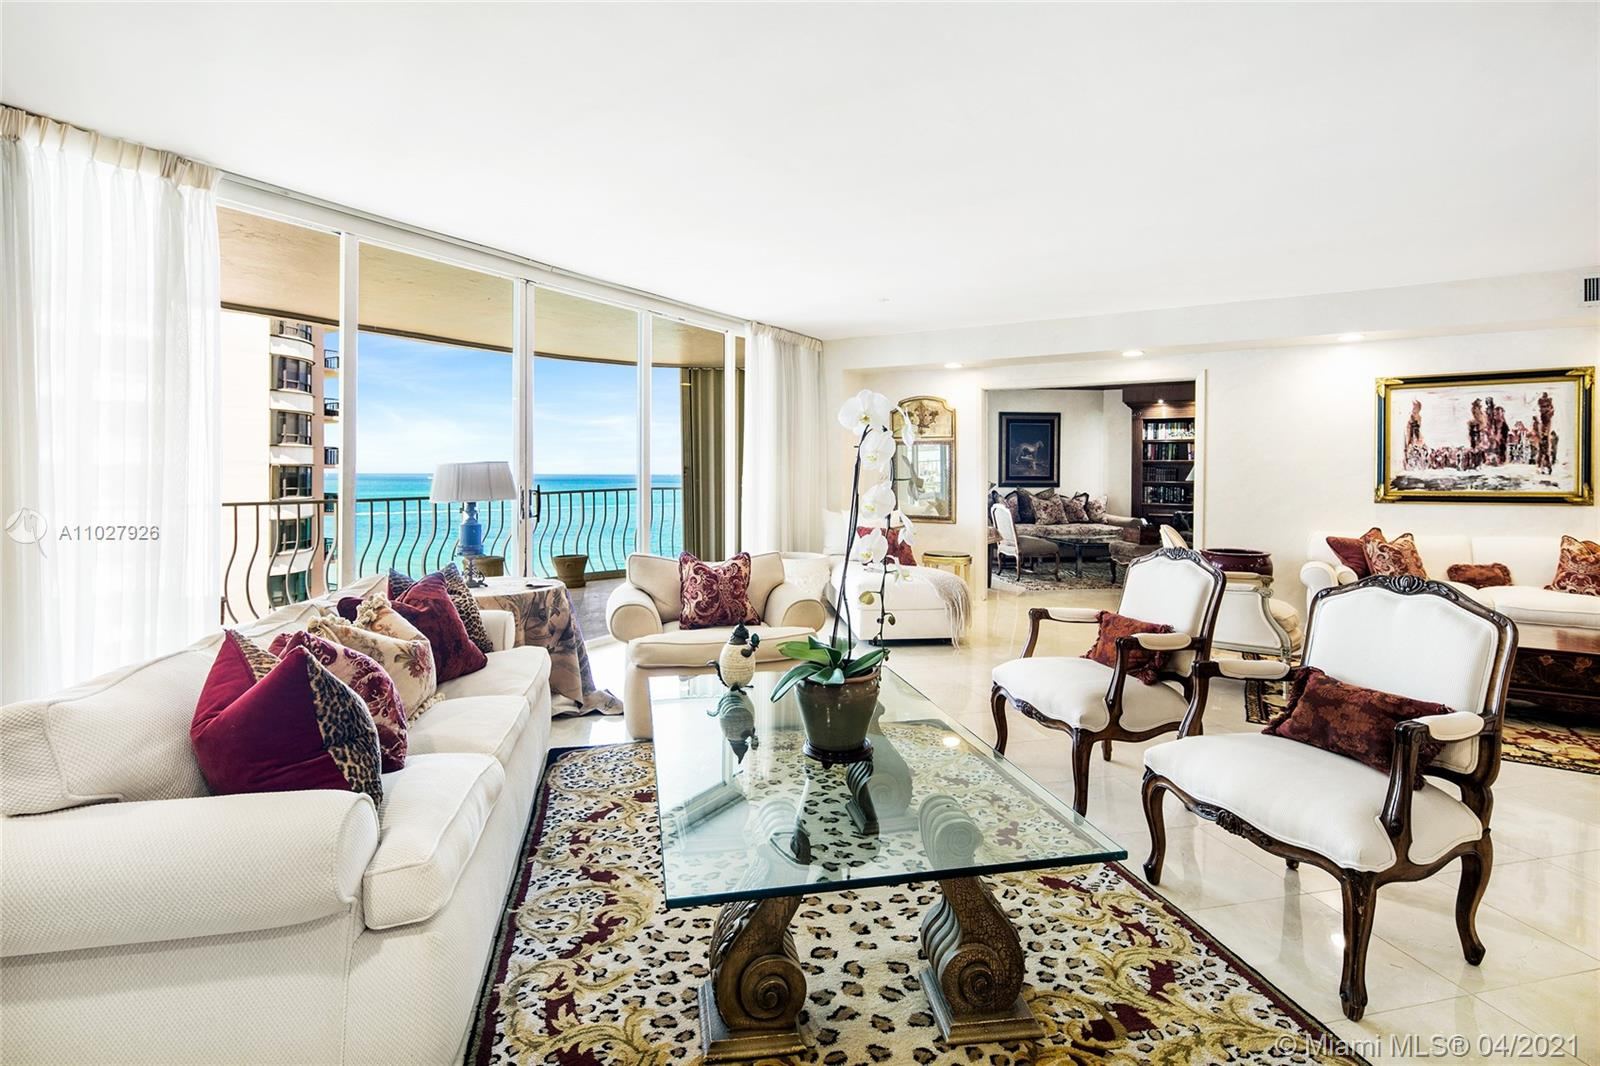 """This partially renovated 2BR/3BA unit offers 2,525 SF of interior space with a large terrace that provides beautiful views to the ocean, over the bay. 16'X16"""" Crema Marfil marble floors throughout except the principle bedroom where there is carpeting. Open kitchen with Thermador oven, Sub-Zero refrigerator and custom cabinetry that leads to the private dining room. The principal bedroom offers 2 large walk-in closets, direct terrace access with ocean views & one principle bathroom has a spa tub & the other has a shower. The second bedroom is currently used as a den and has a full bathroom. Laundry room equipped with Whirlpool washer and dryer and mop sink. Bal Harbour 101 is a full-service building on the ocean - amenities include: restaurant, pool/beach & room service, gym & tennis court."""